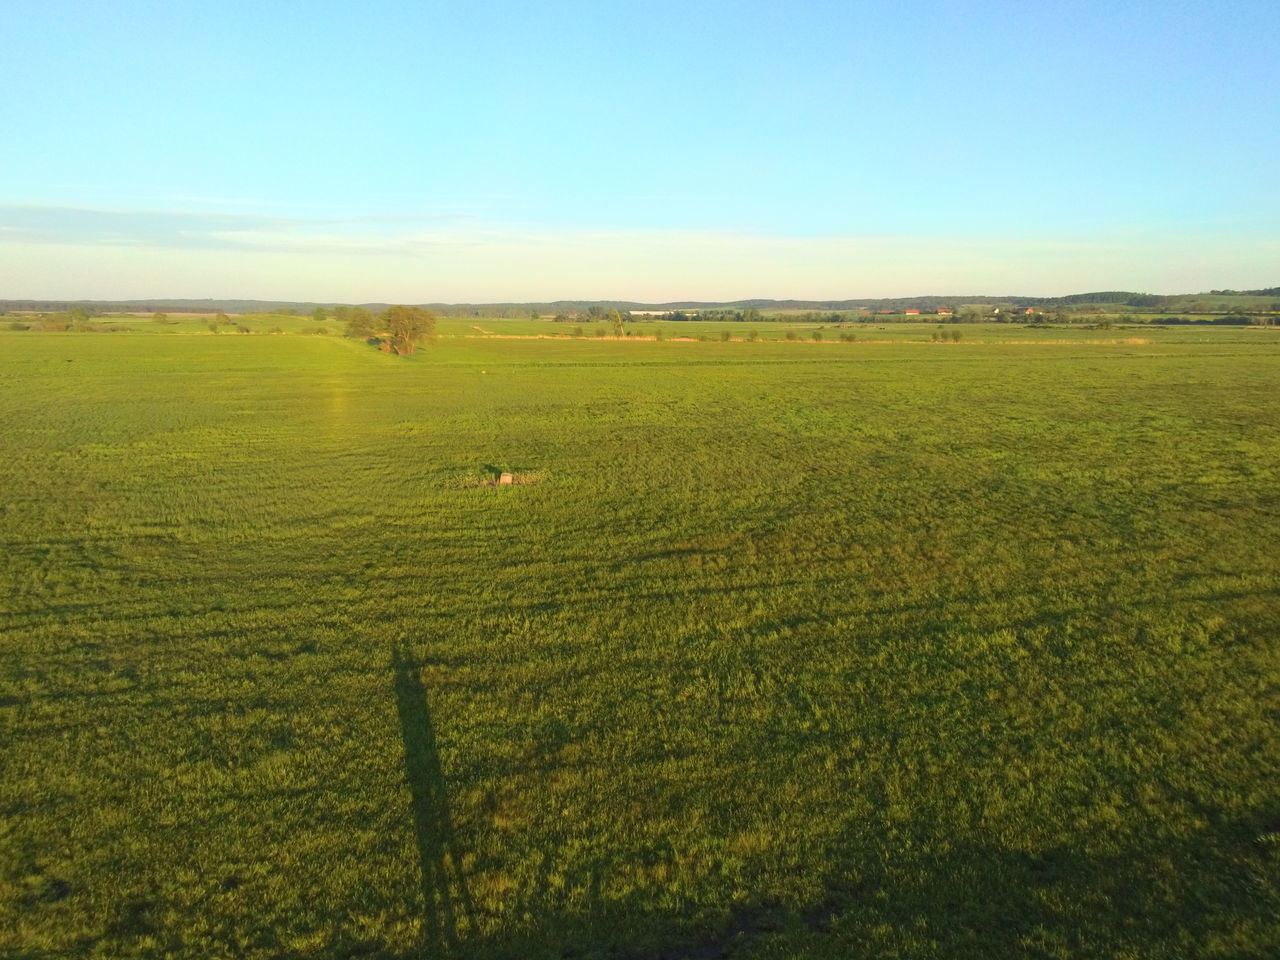 field, agriculture, landscape, farm, nature, rural scene, tranquil scene, tranquility, beauty in nature, crop, no people, scenics, day, growth, outdoors, grass, sky